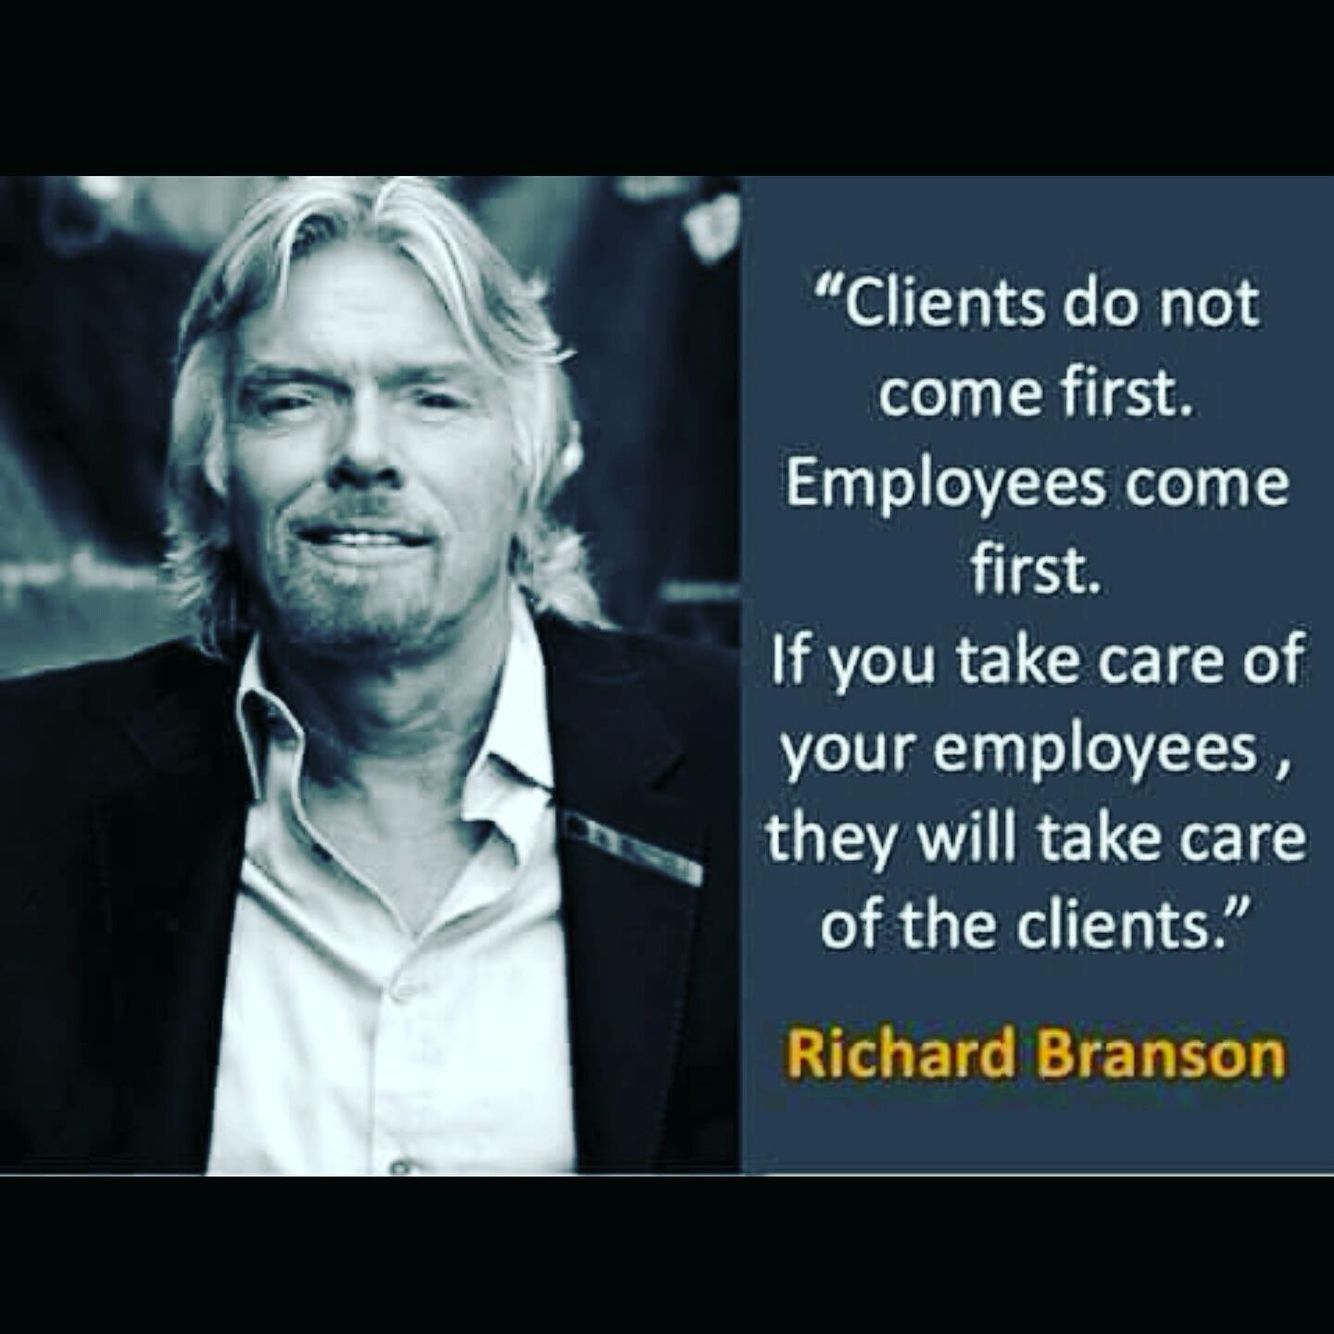 Employees Clients Happy: Treat Your Employees Right! They Are The Backbone Of Your